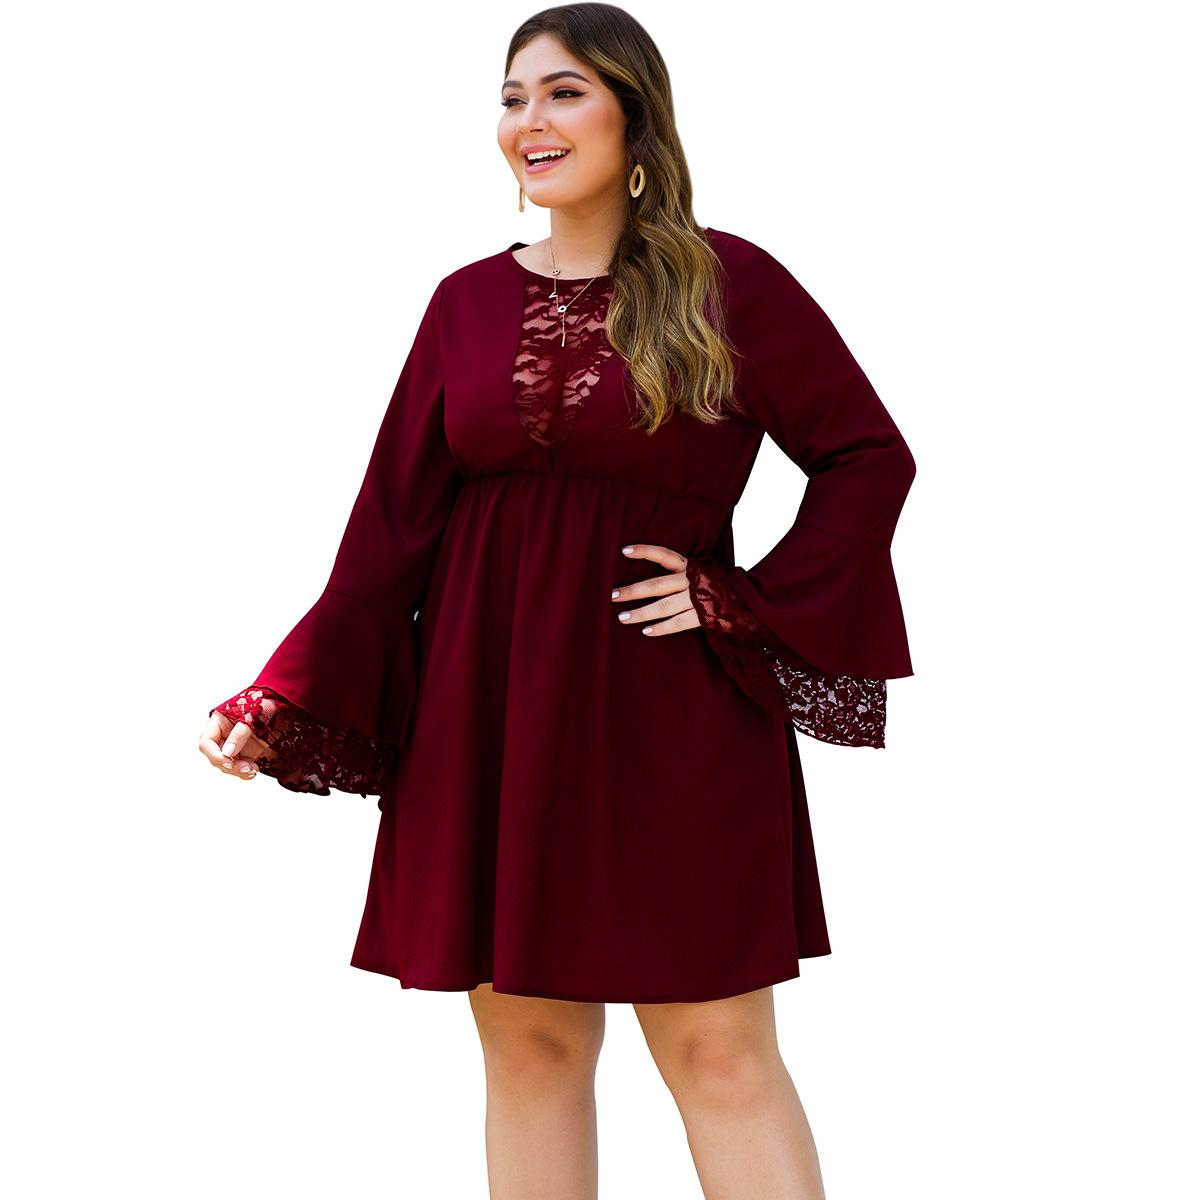 Women Plus Size 4XL <font><b>5XL</b></font> <font><b>Sexy</b></font> Lace <font><b>Dress</b></font> O Neck Black Large size Bell Sleeve Office Lady <font><b>Dress</b></font> 2019 Autumn Casual Big Size <font><b>Dress</b></font> image